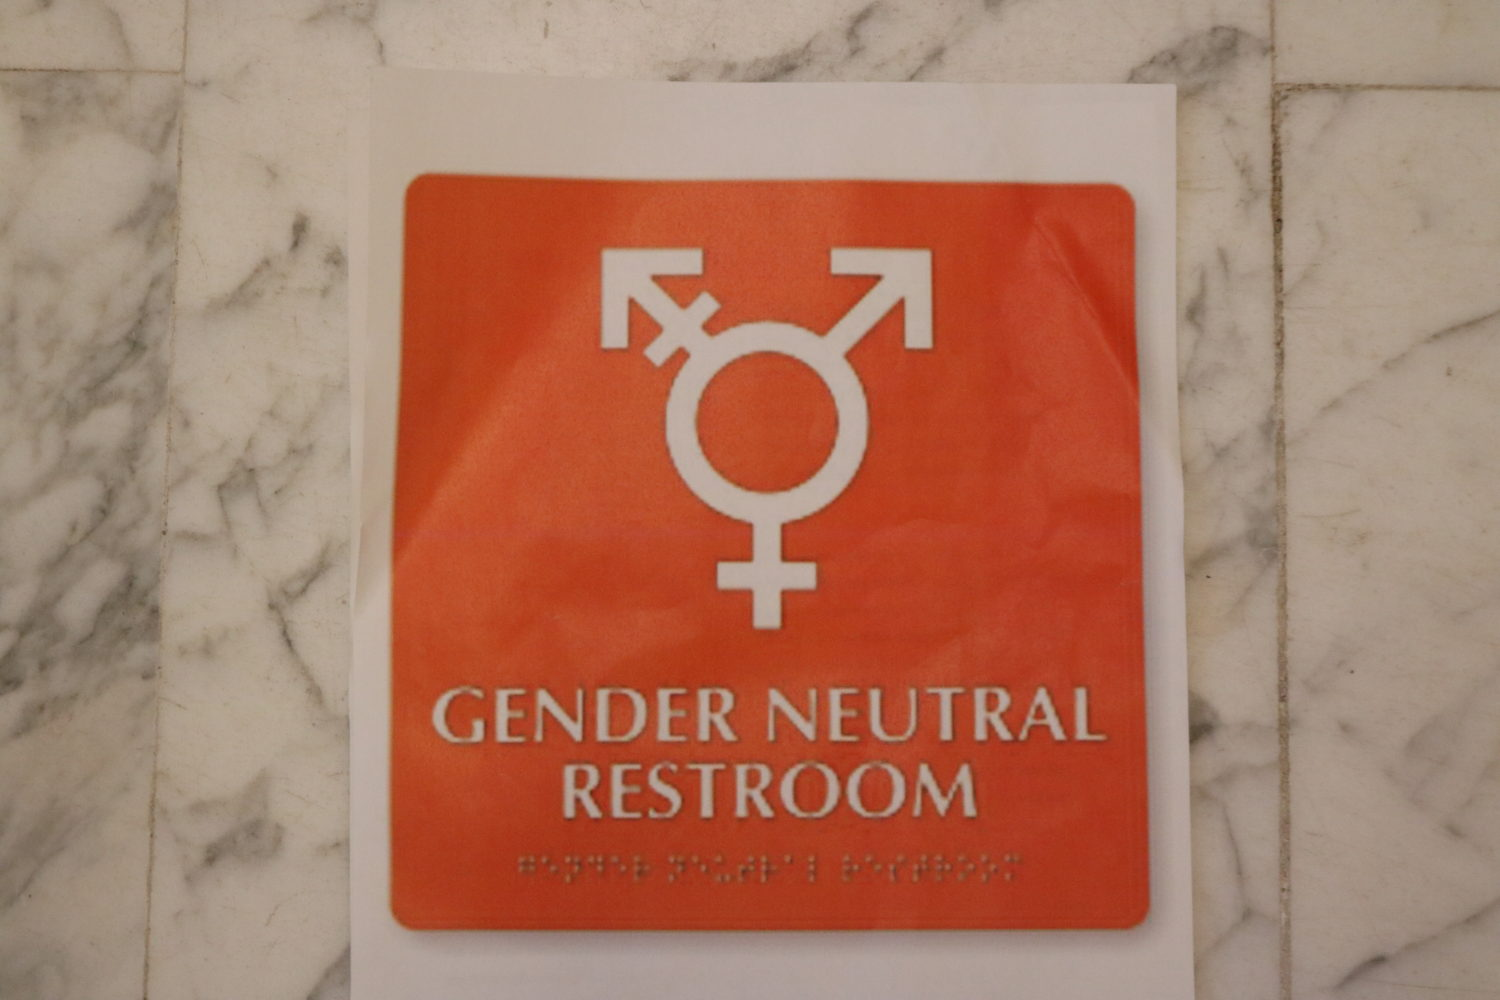 Gender Neutral Bathroom sign photo Laanen